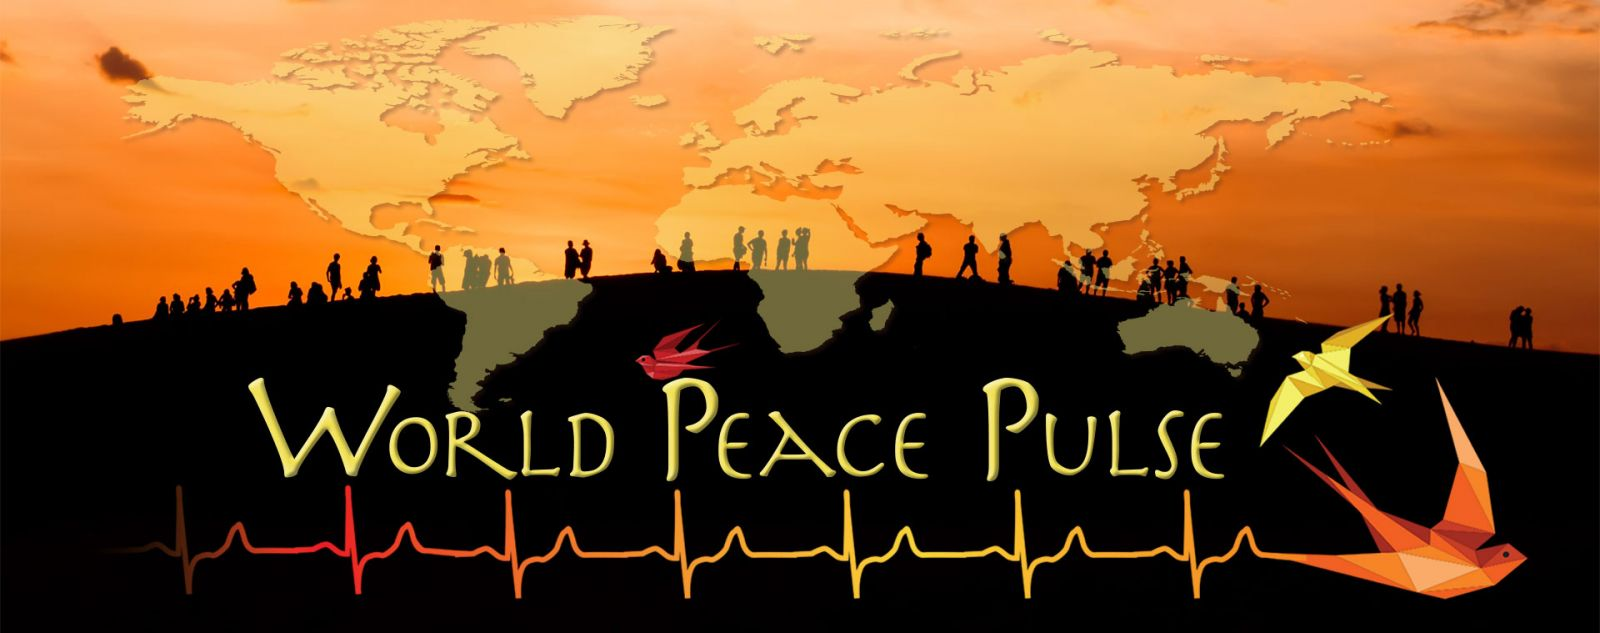 World Peace Pulse